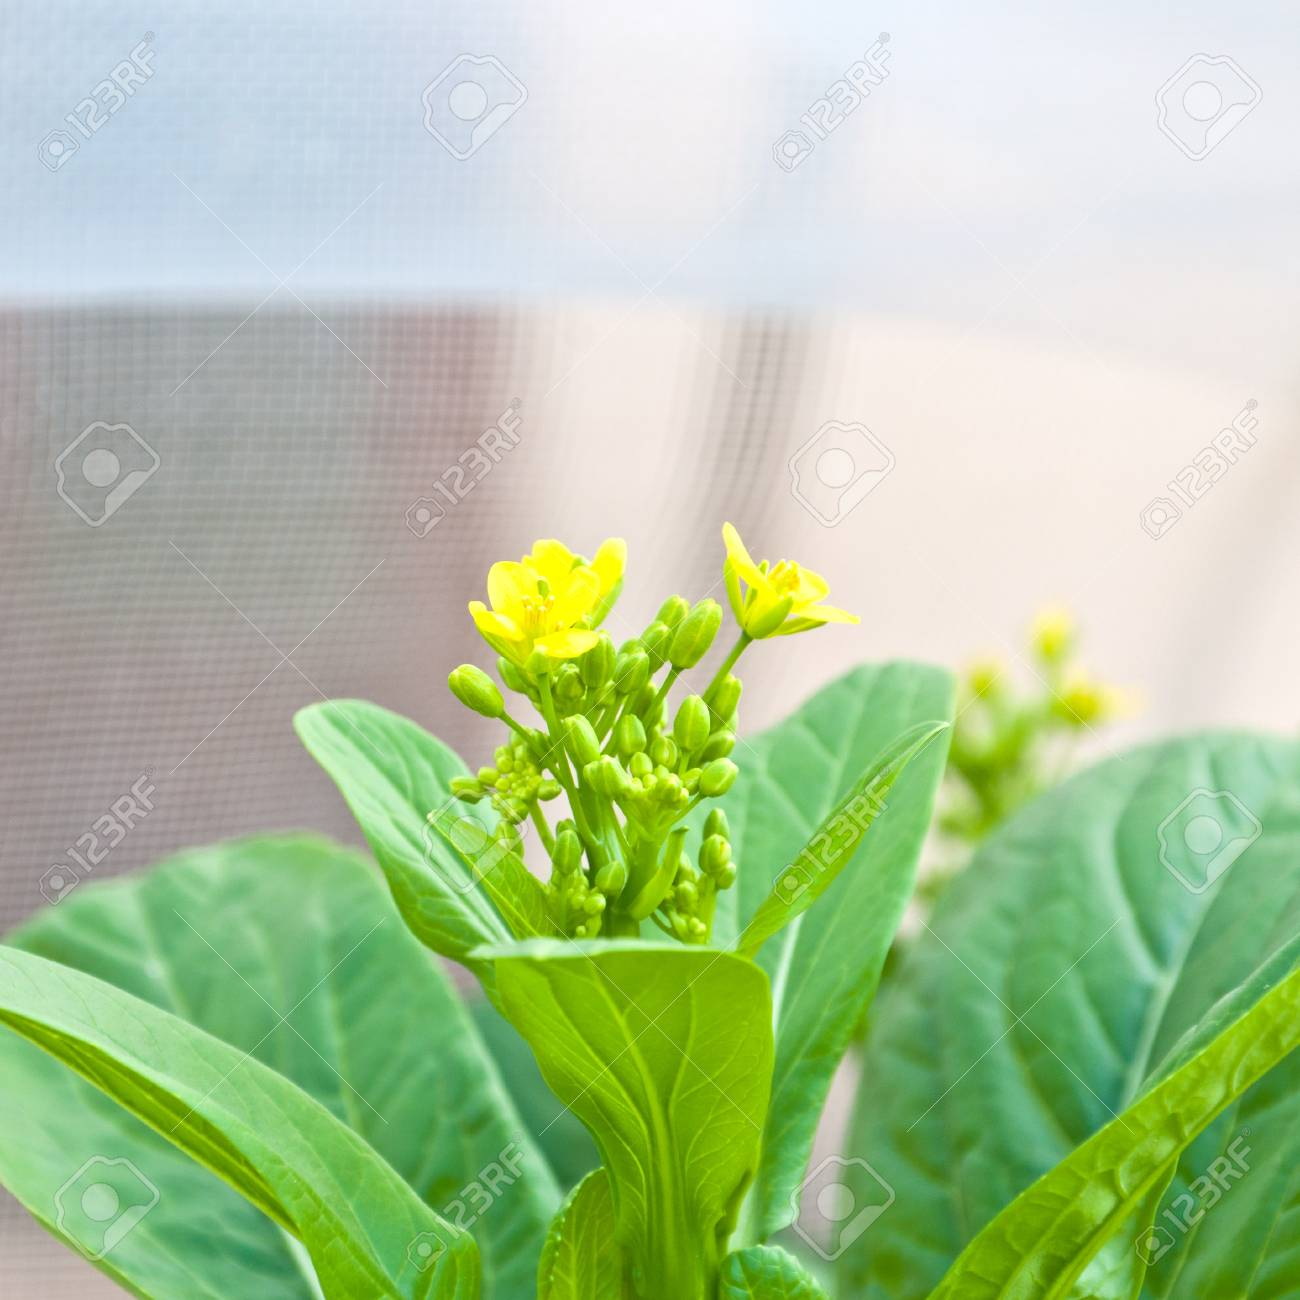 soilless or hydroponic Stock Photo - 14722821